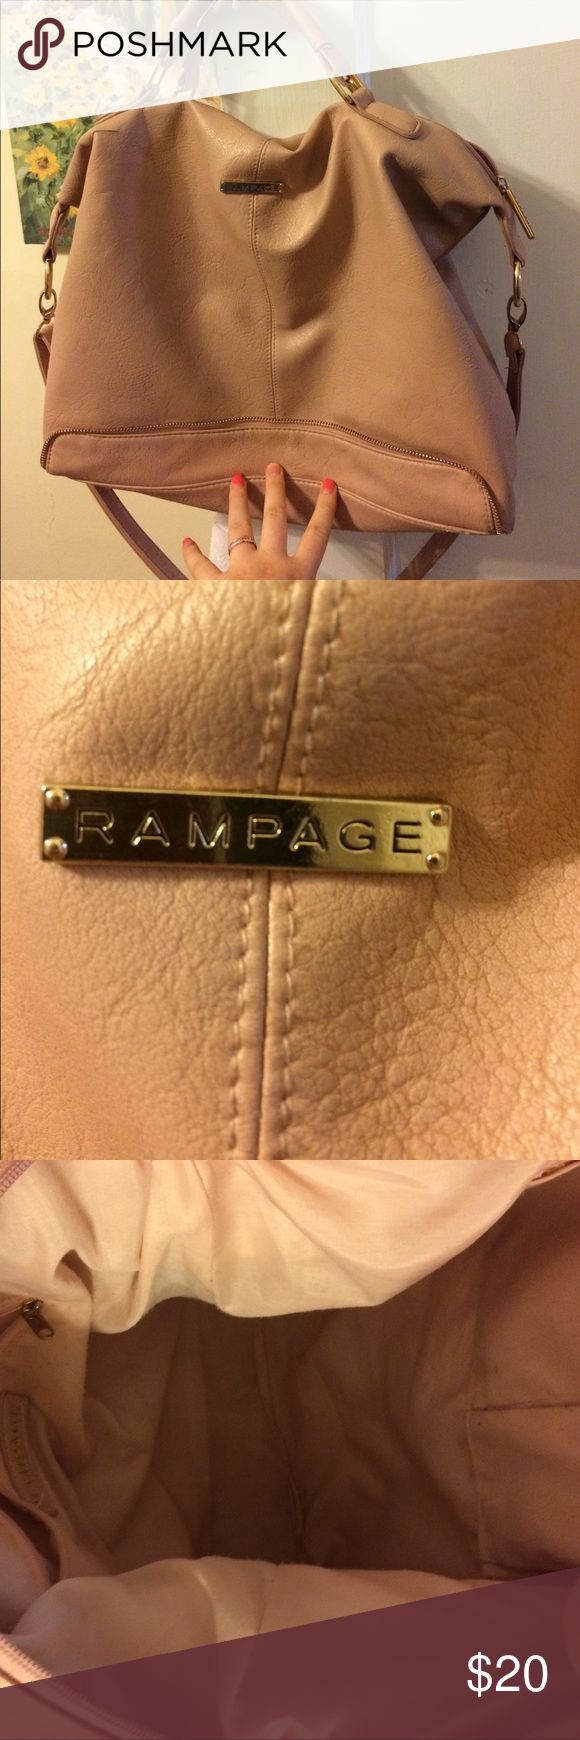 Pink tote purse A little ware and tear but still in great condition Rampage Bags Totes